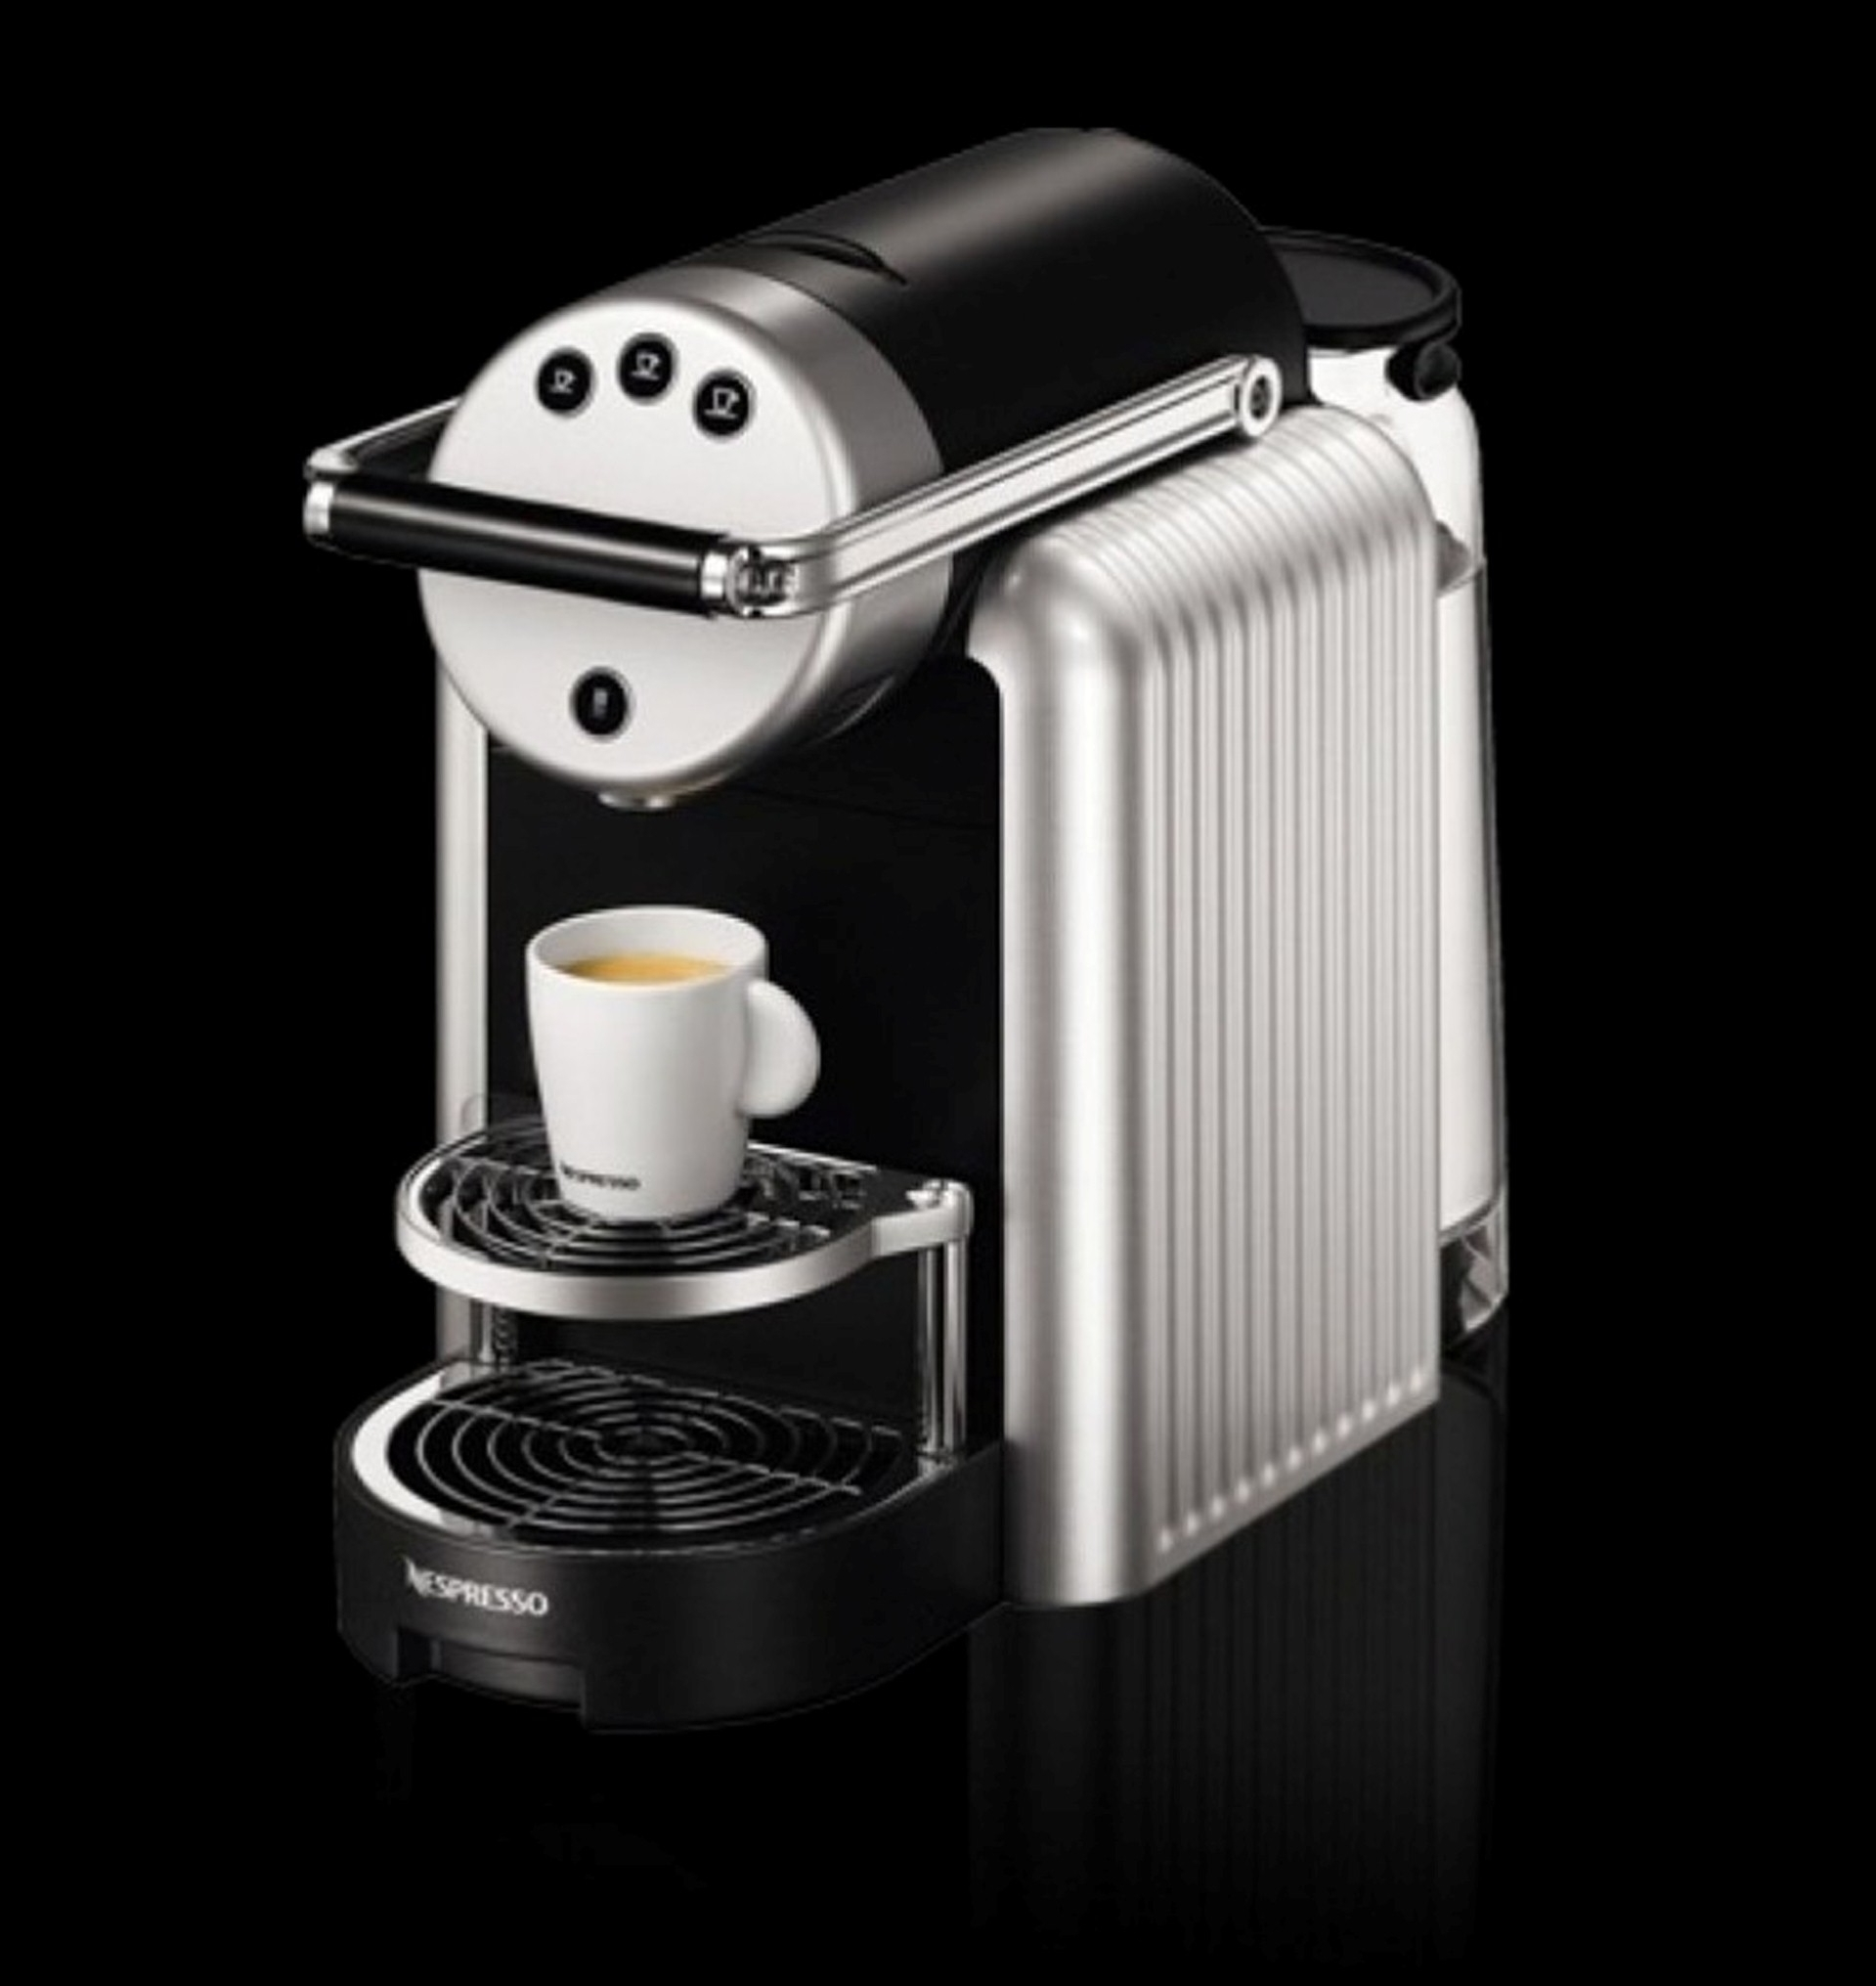 Luxurious Photos Of Future Kitchen Technology With Espresso Zenius Coffee Maker Future Technology Exclusive Kitchen Idea (Image 25 of 123)